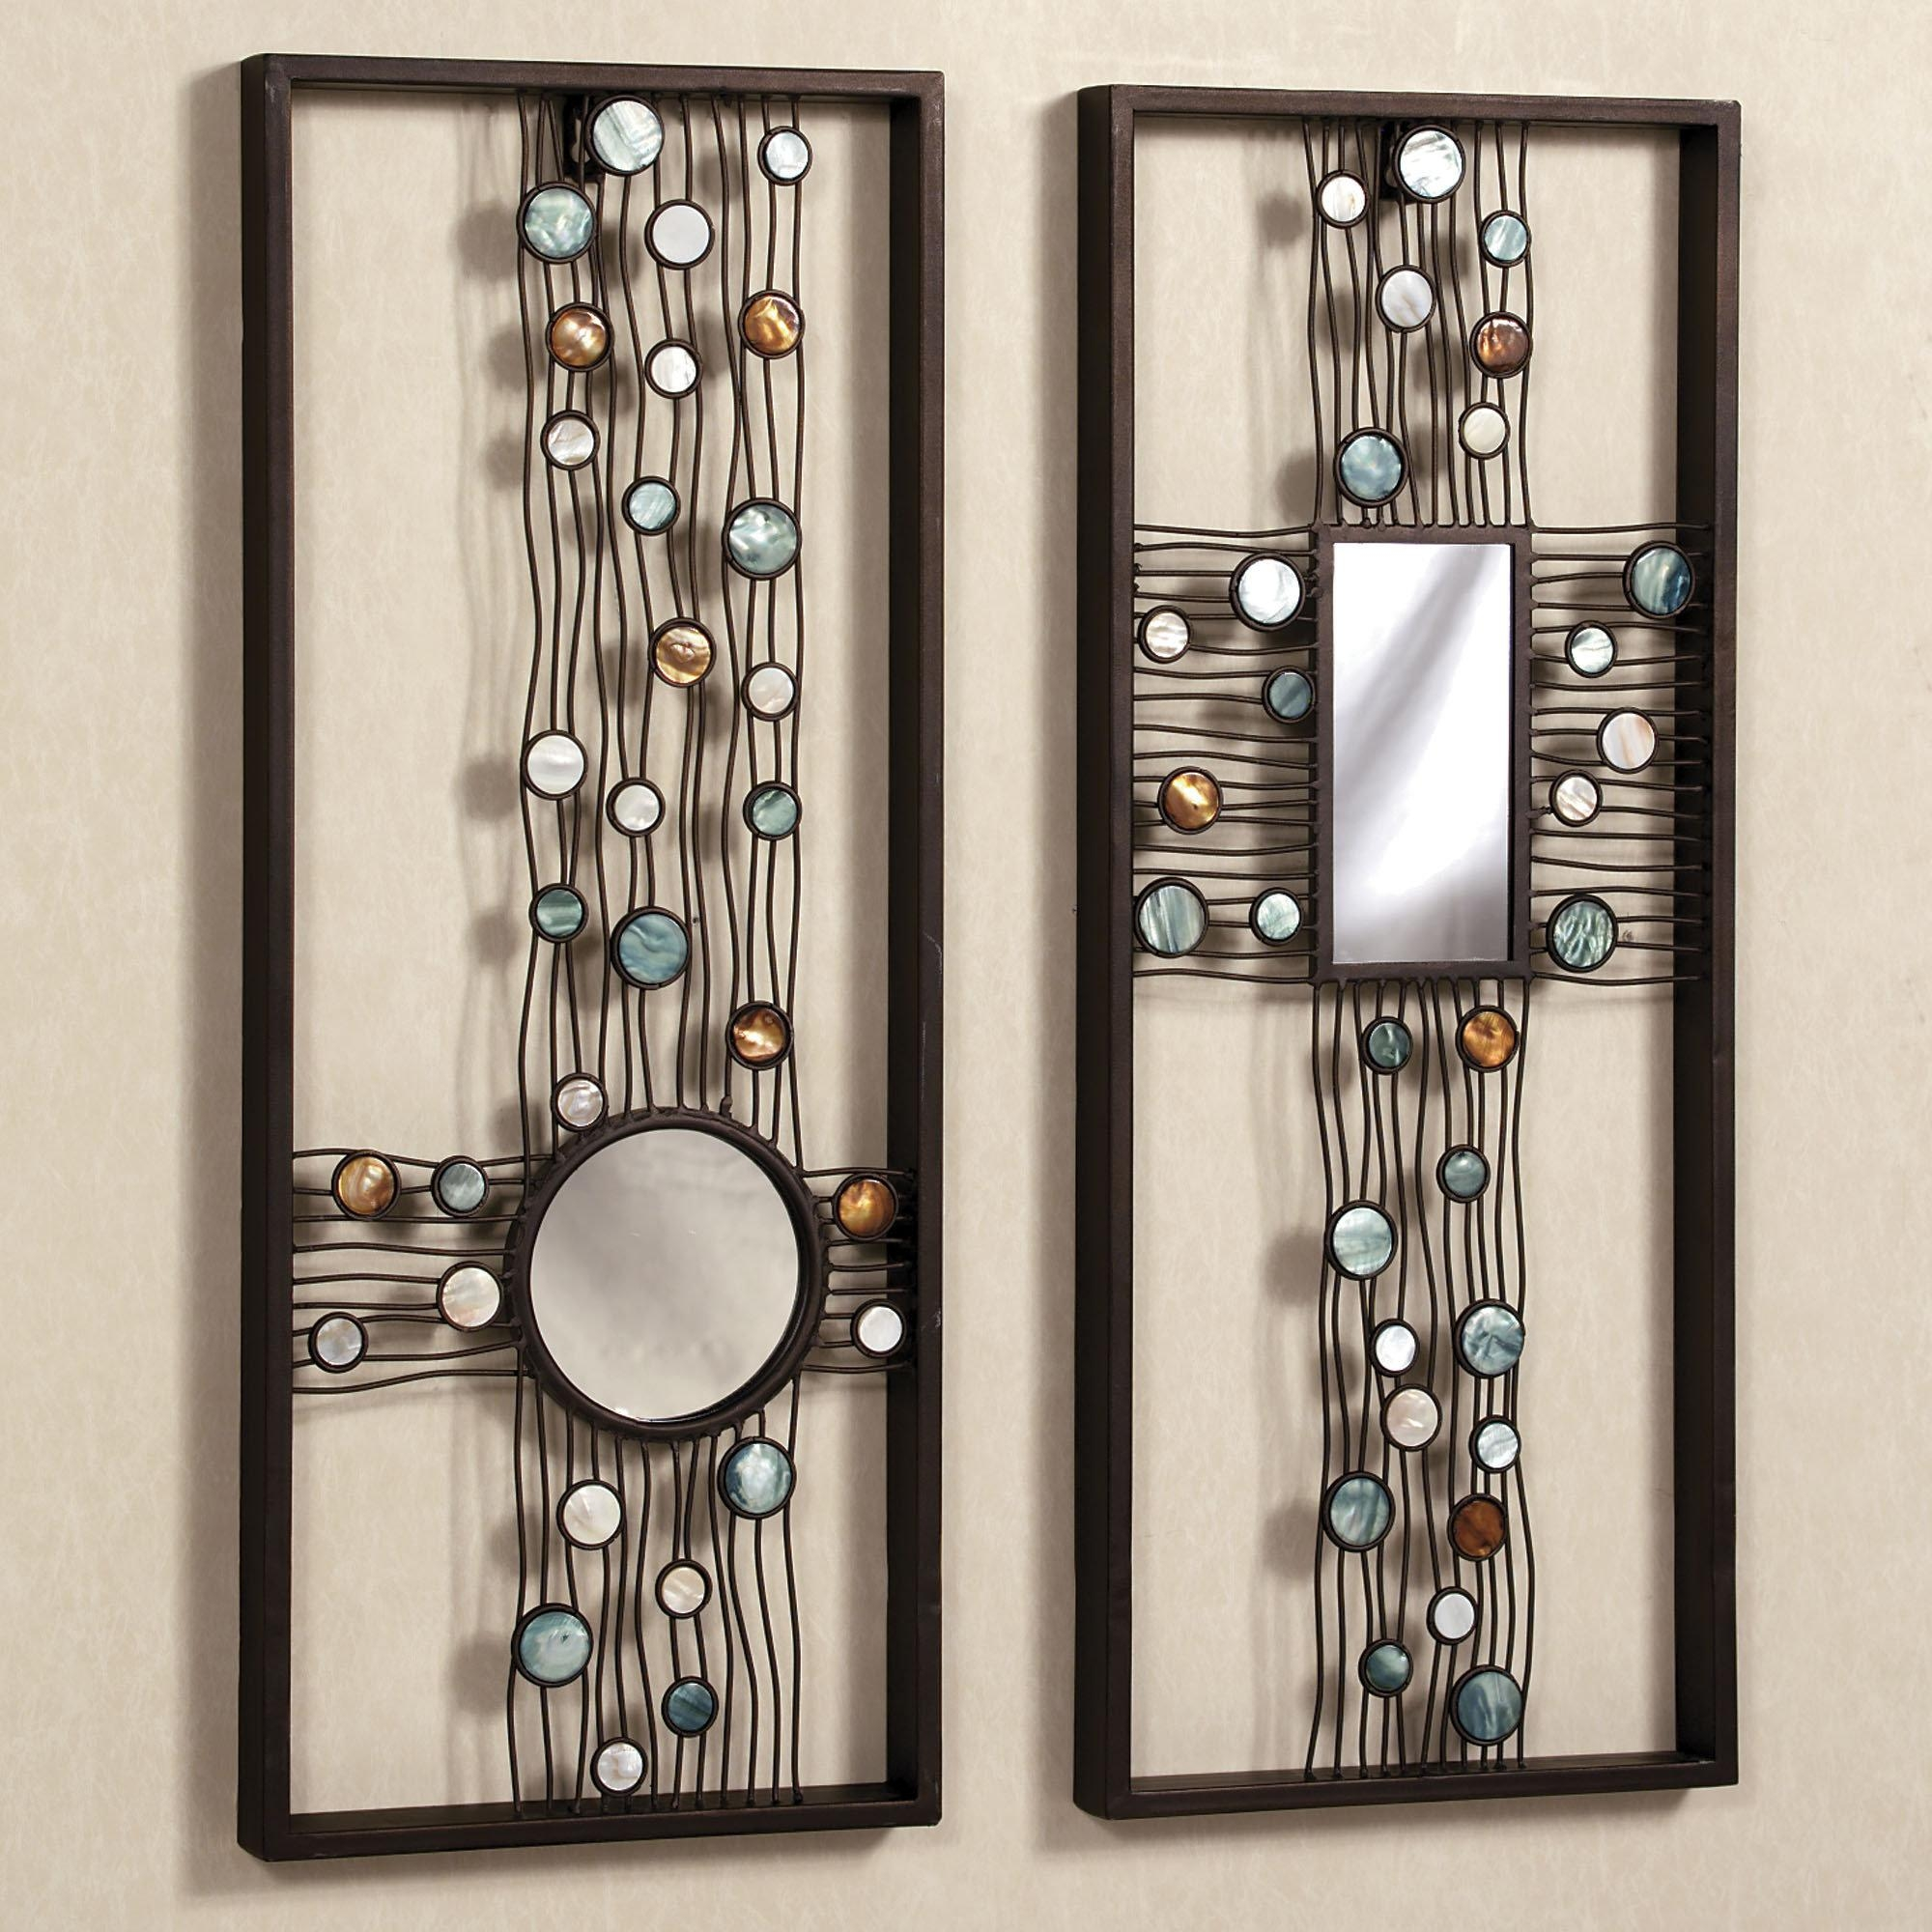 Decor : 3 Framed Wall Art Ideas Framed Wall Art Images About Intended For Mirrored Frame Wall Art (View 12 of 20)